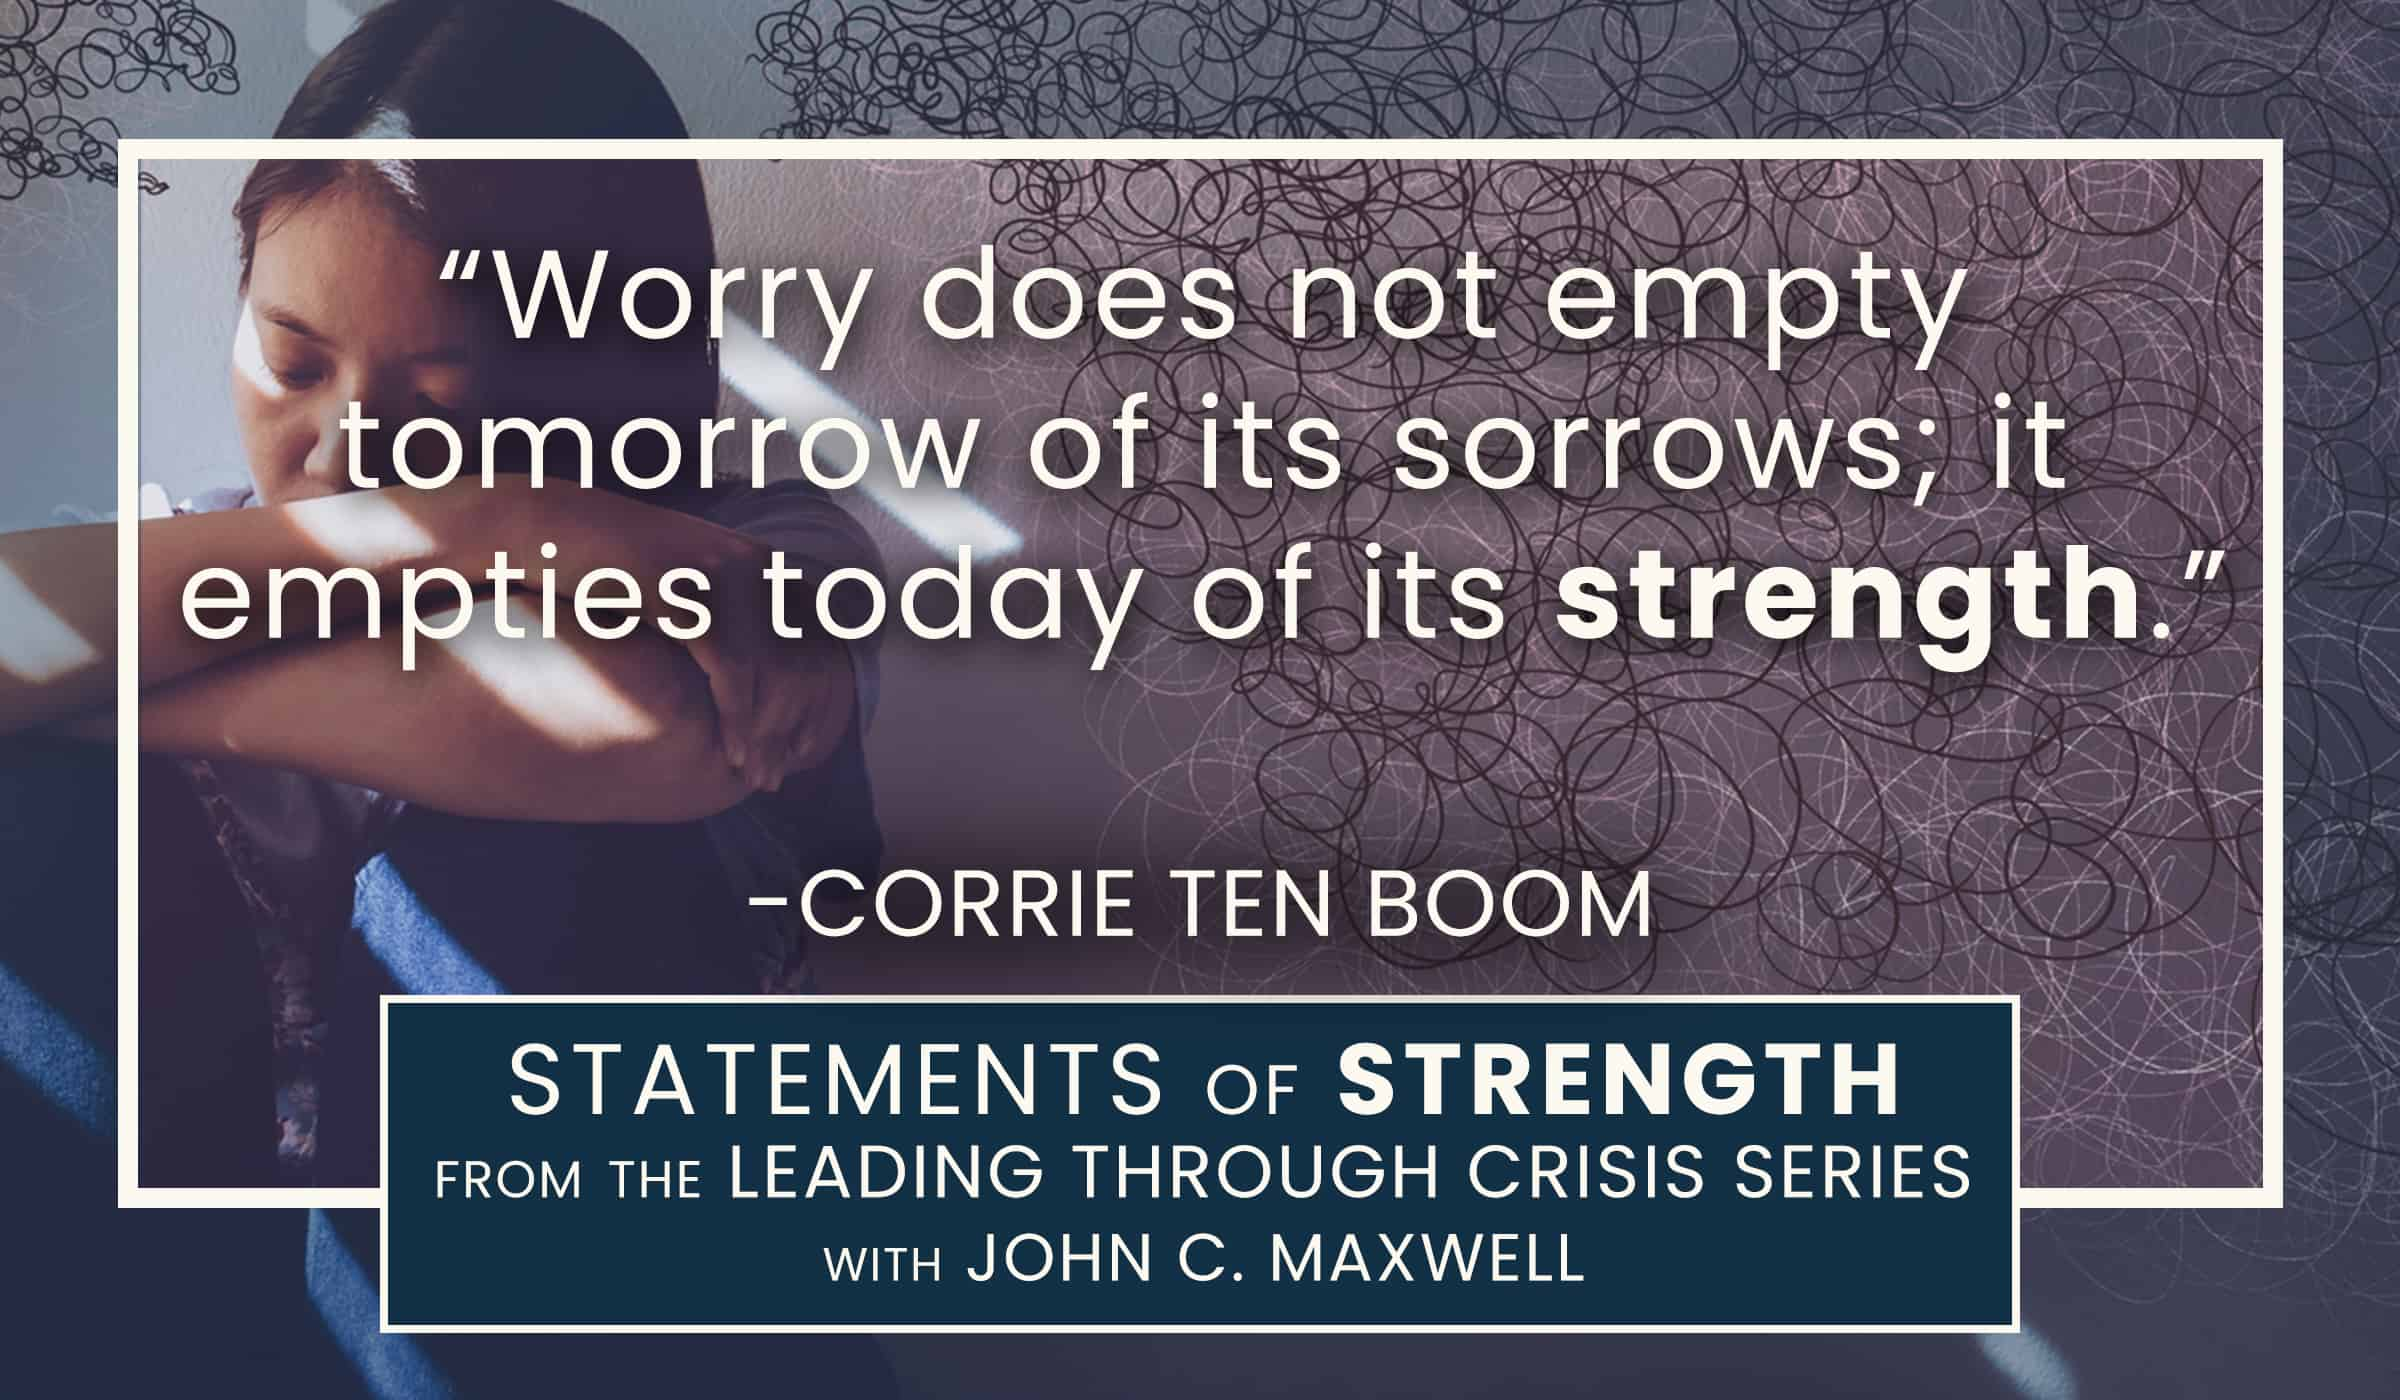 image of quotation picture with quote from corrie ten boom